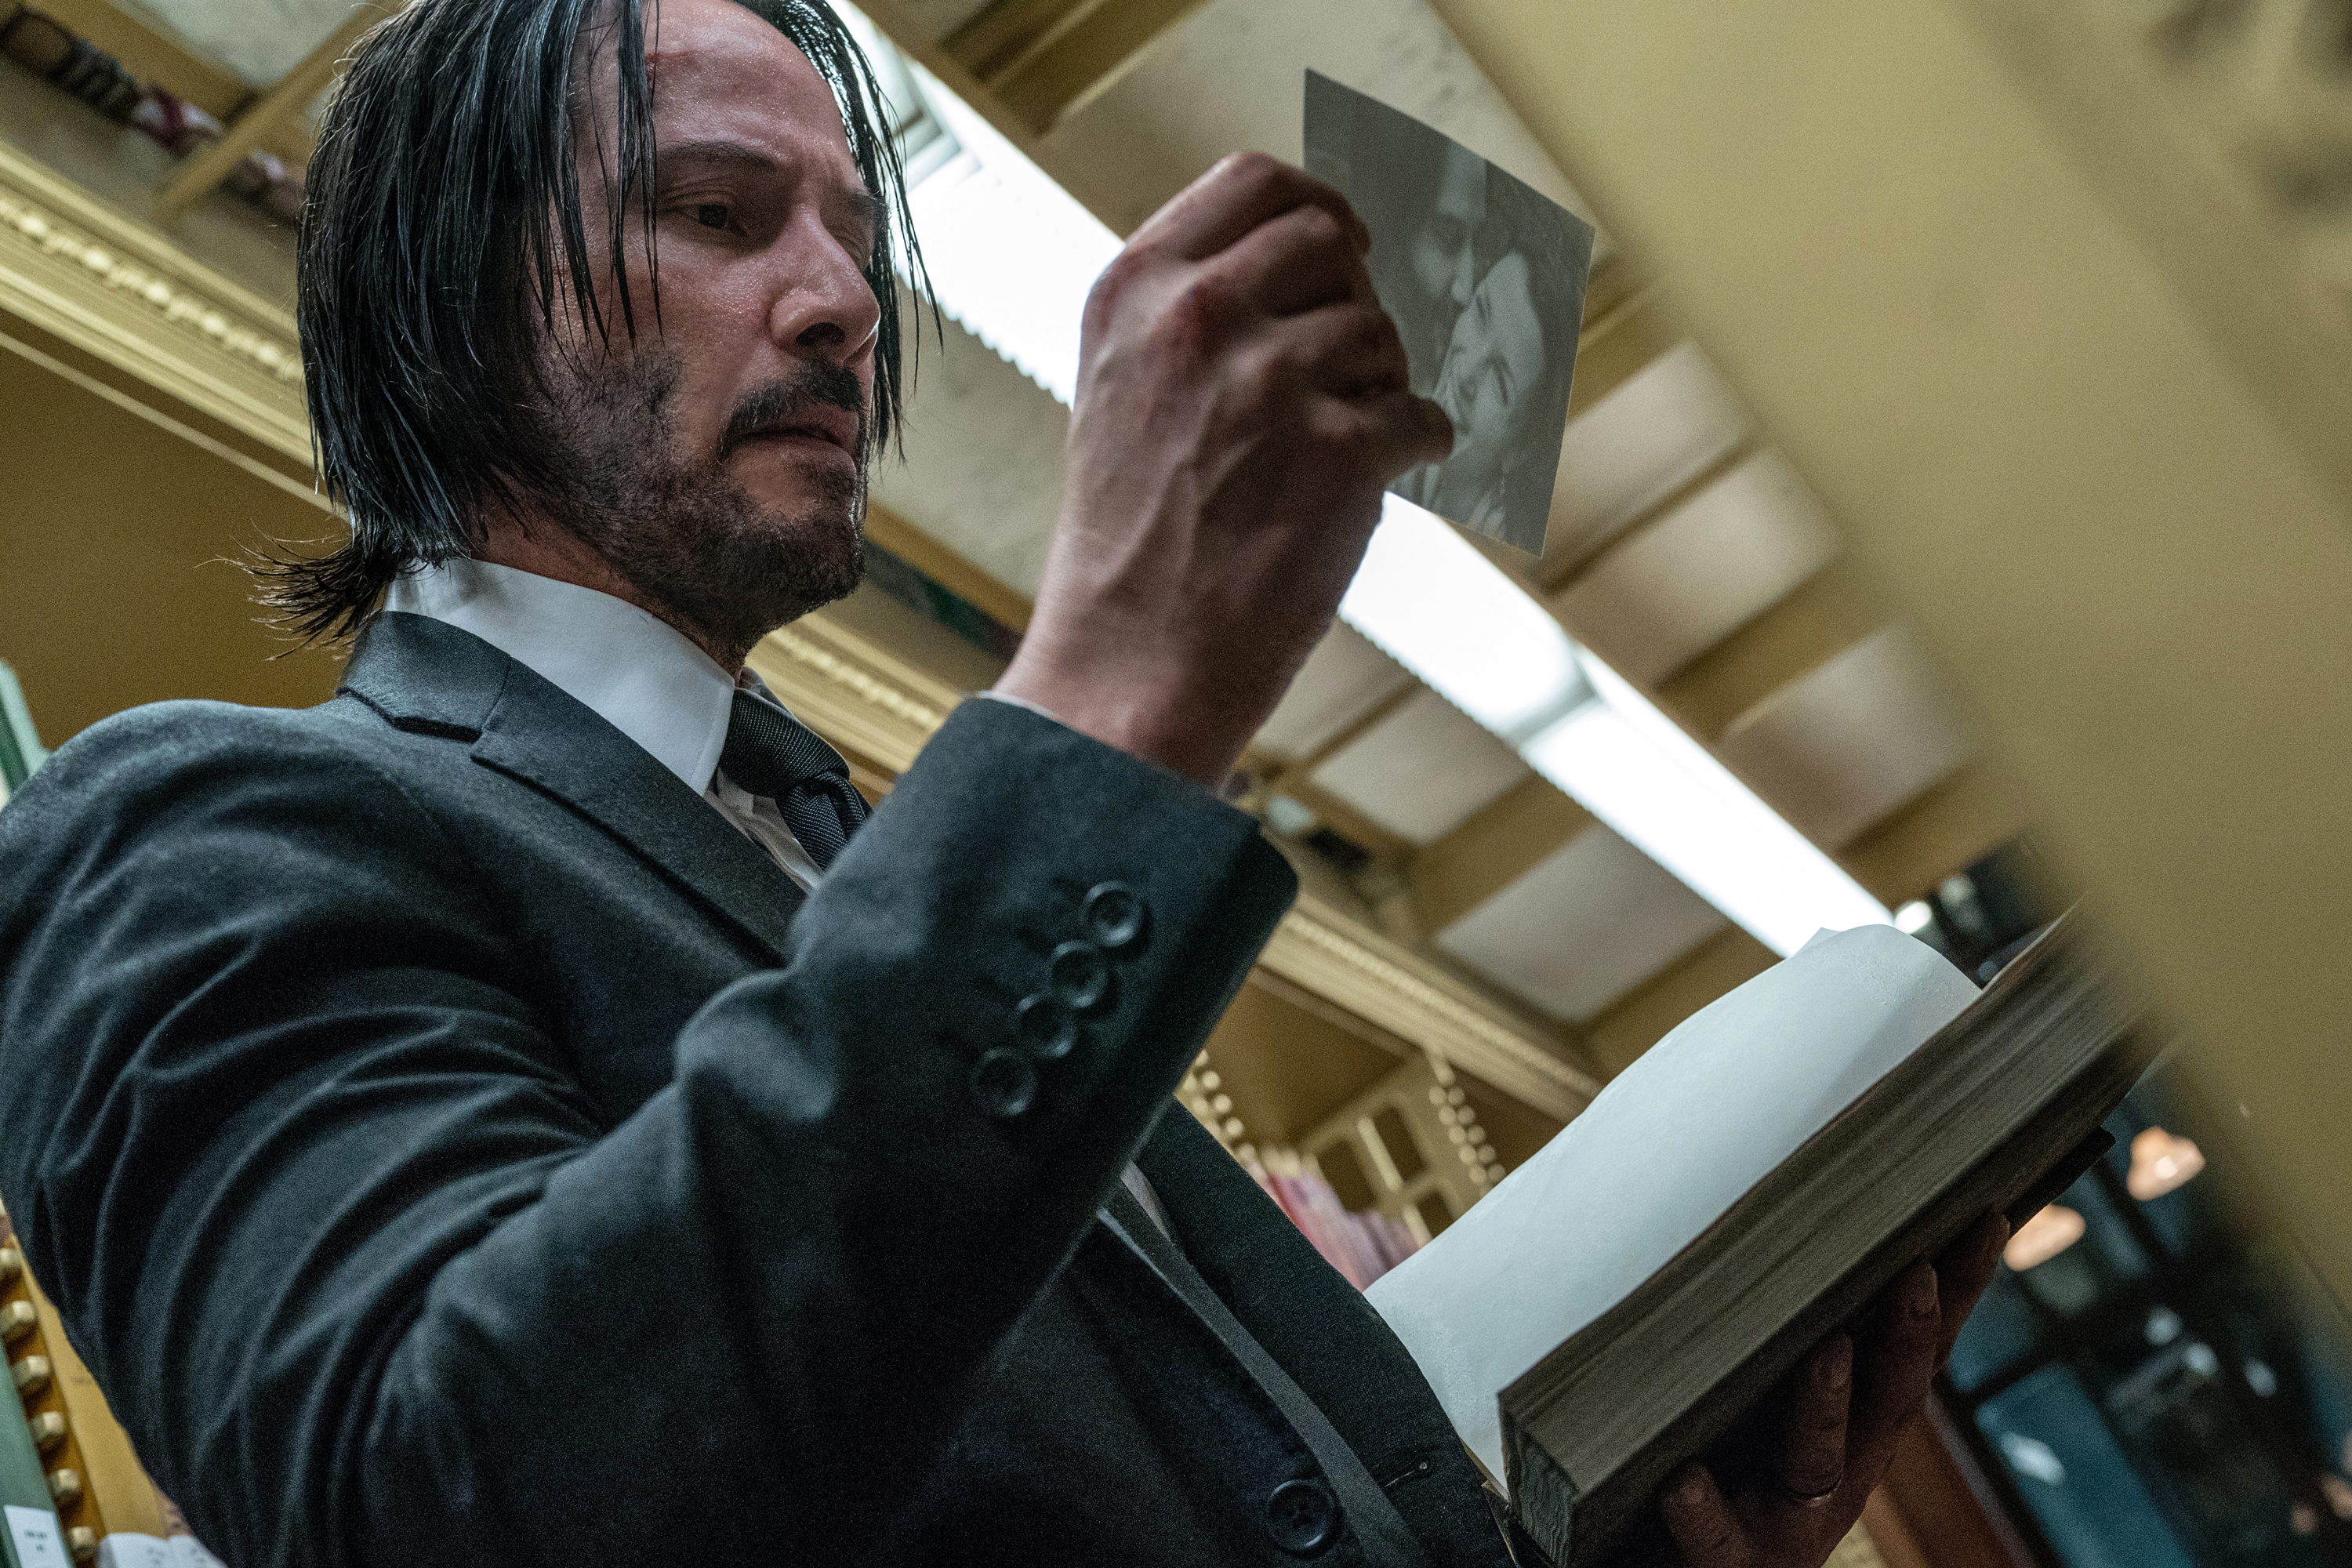 John Wick 3': Watch Keanu Reeves Fight for His Life in New Trailer